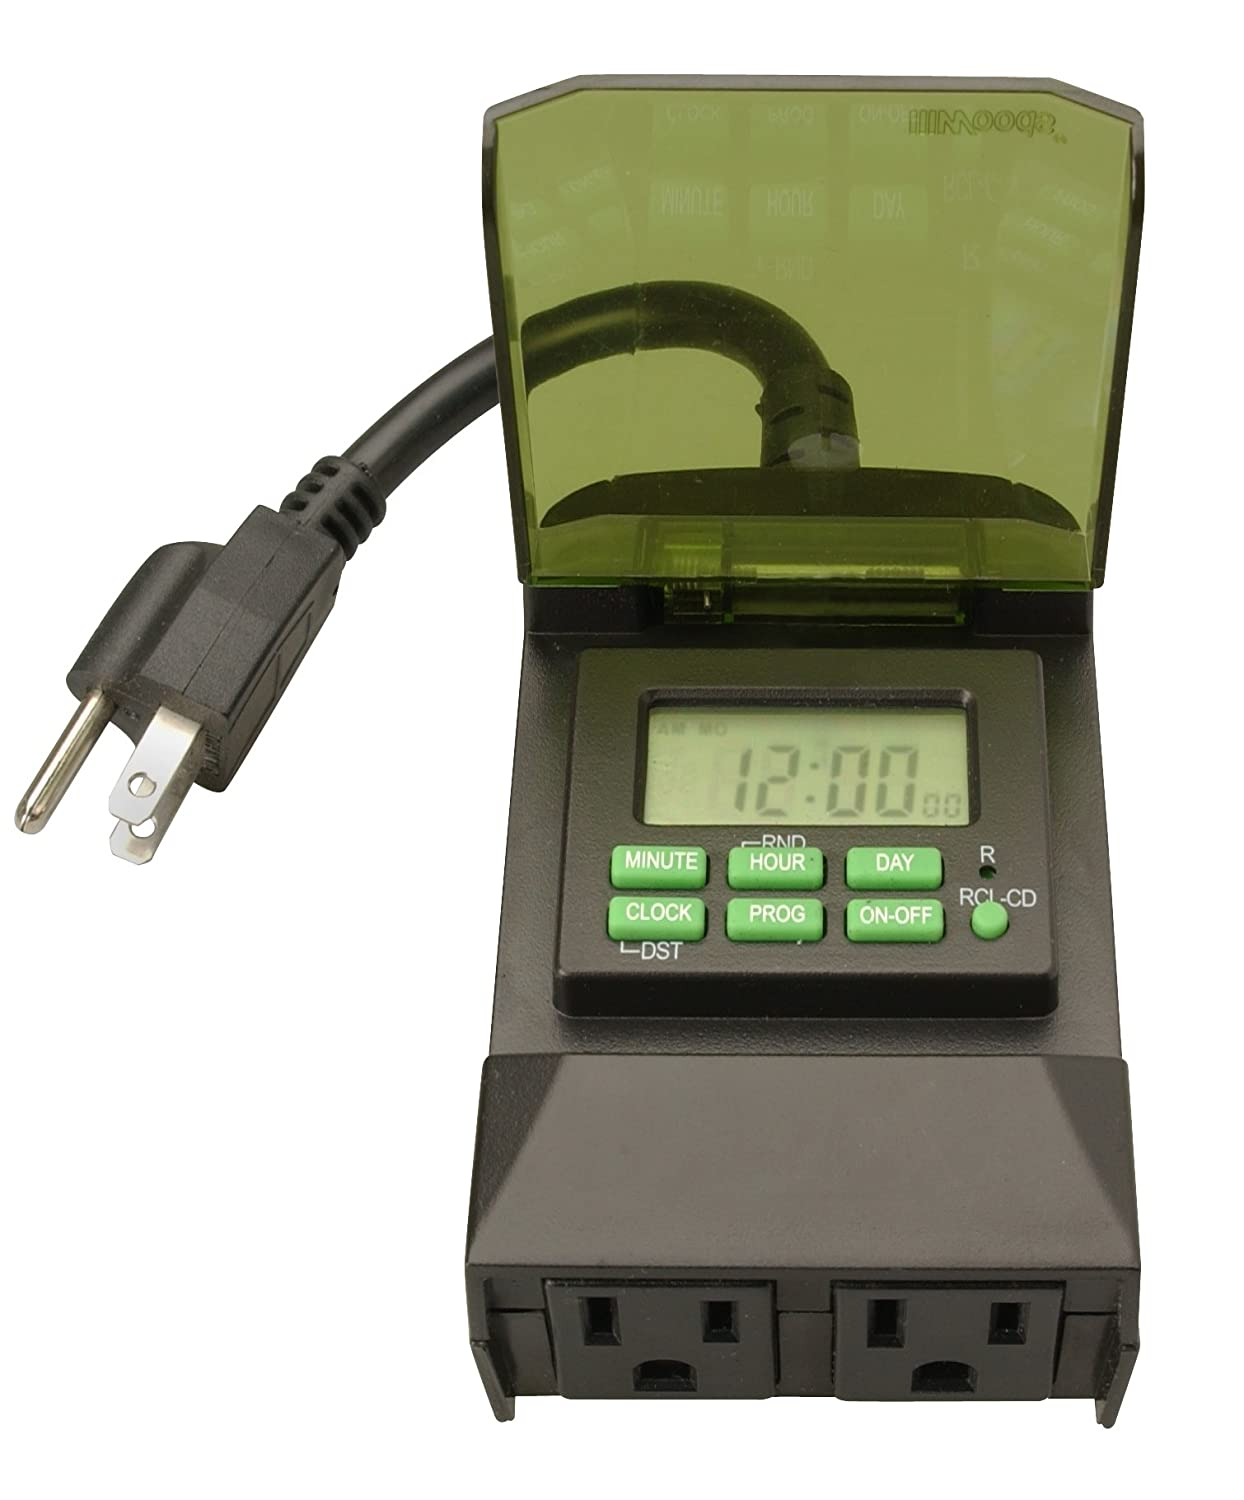 Woods 50014wd outdoor 7 day digital plug in timer 2 grounded woods 50014wd outdoor 7 day digital plug in timer 2 grounded outlets amazon workwithnaturefo